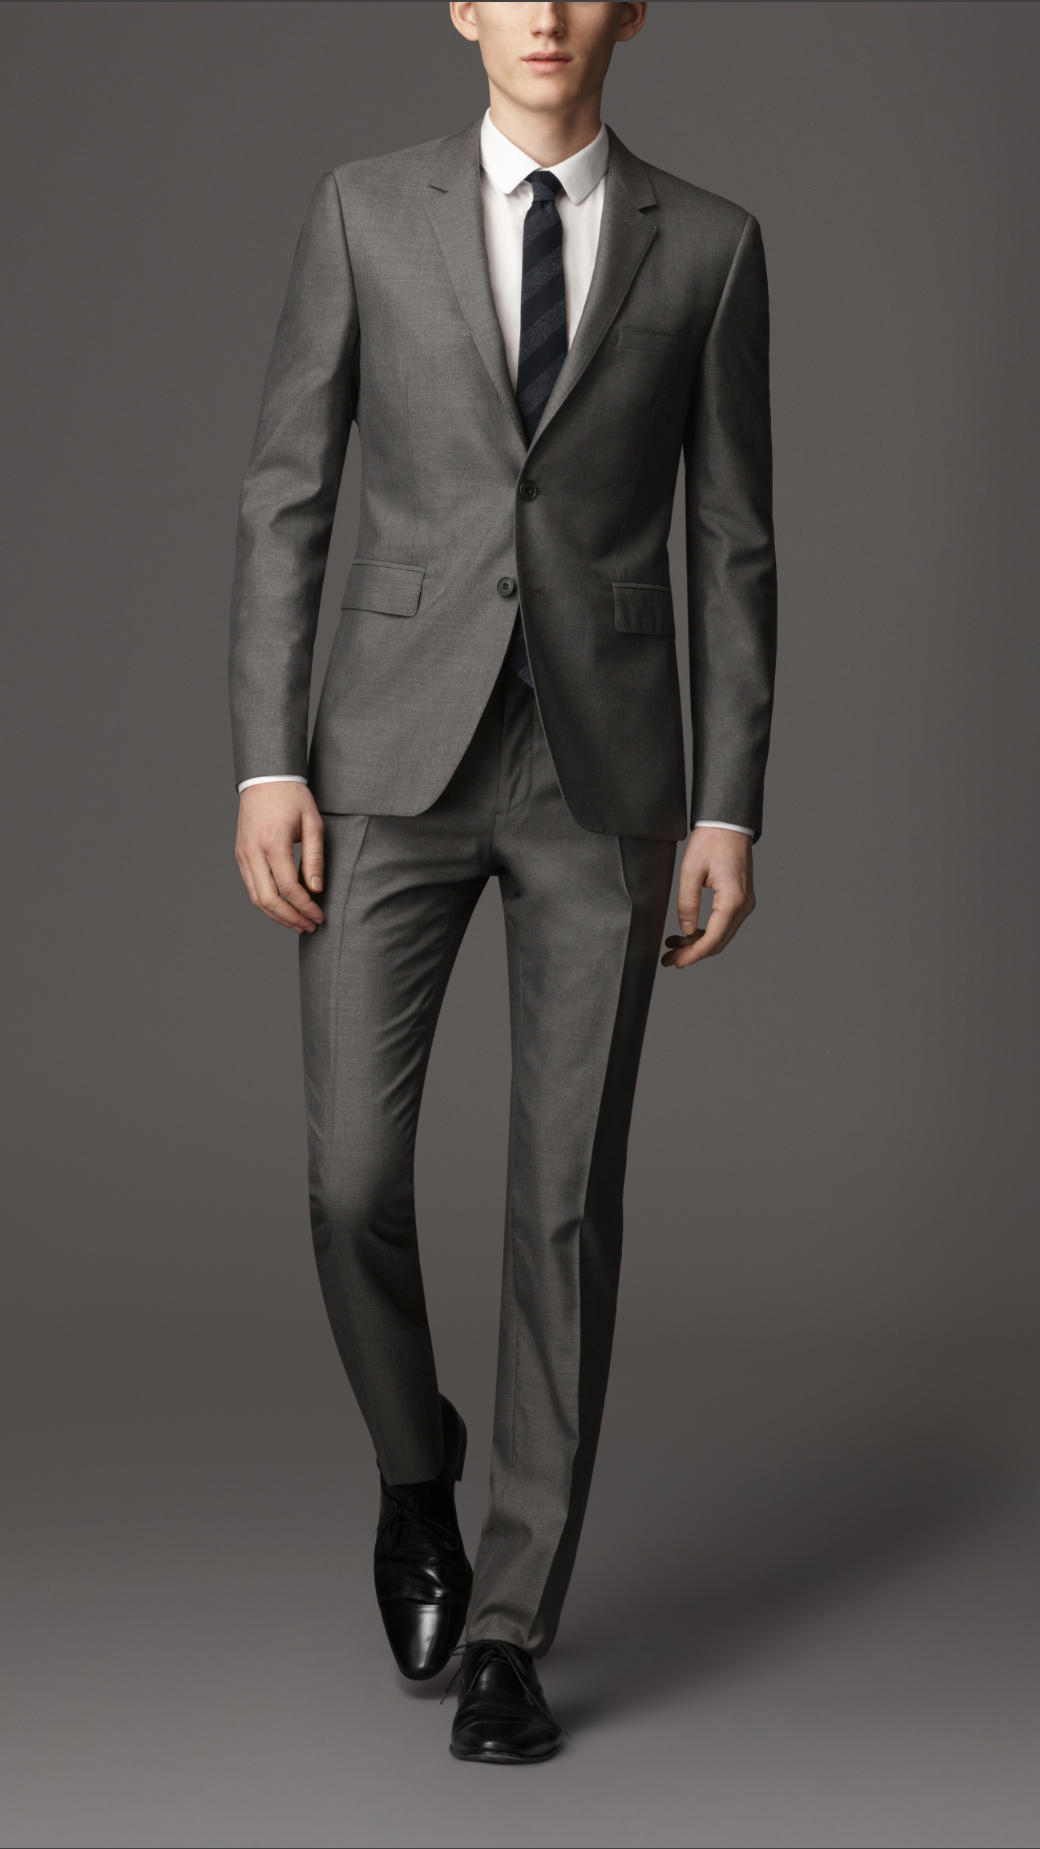 We carry men's suits for every occasion, budget, and style including European slim fit suits and classic fit suits - plus everything in between. Our selection includes linen suits and seersucker suits for summer, wool suits for year-round wear, and even wedding tuxedos that fit your budget. With their growing popularity, 3 piece suits are a great option.. Never bought a suit on.